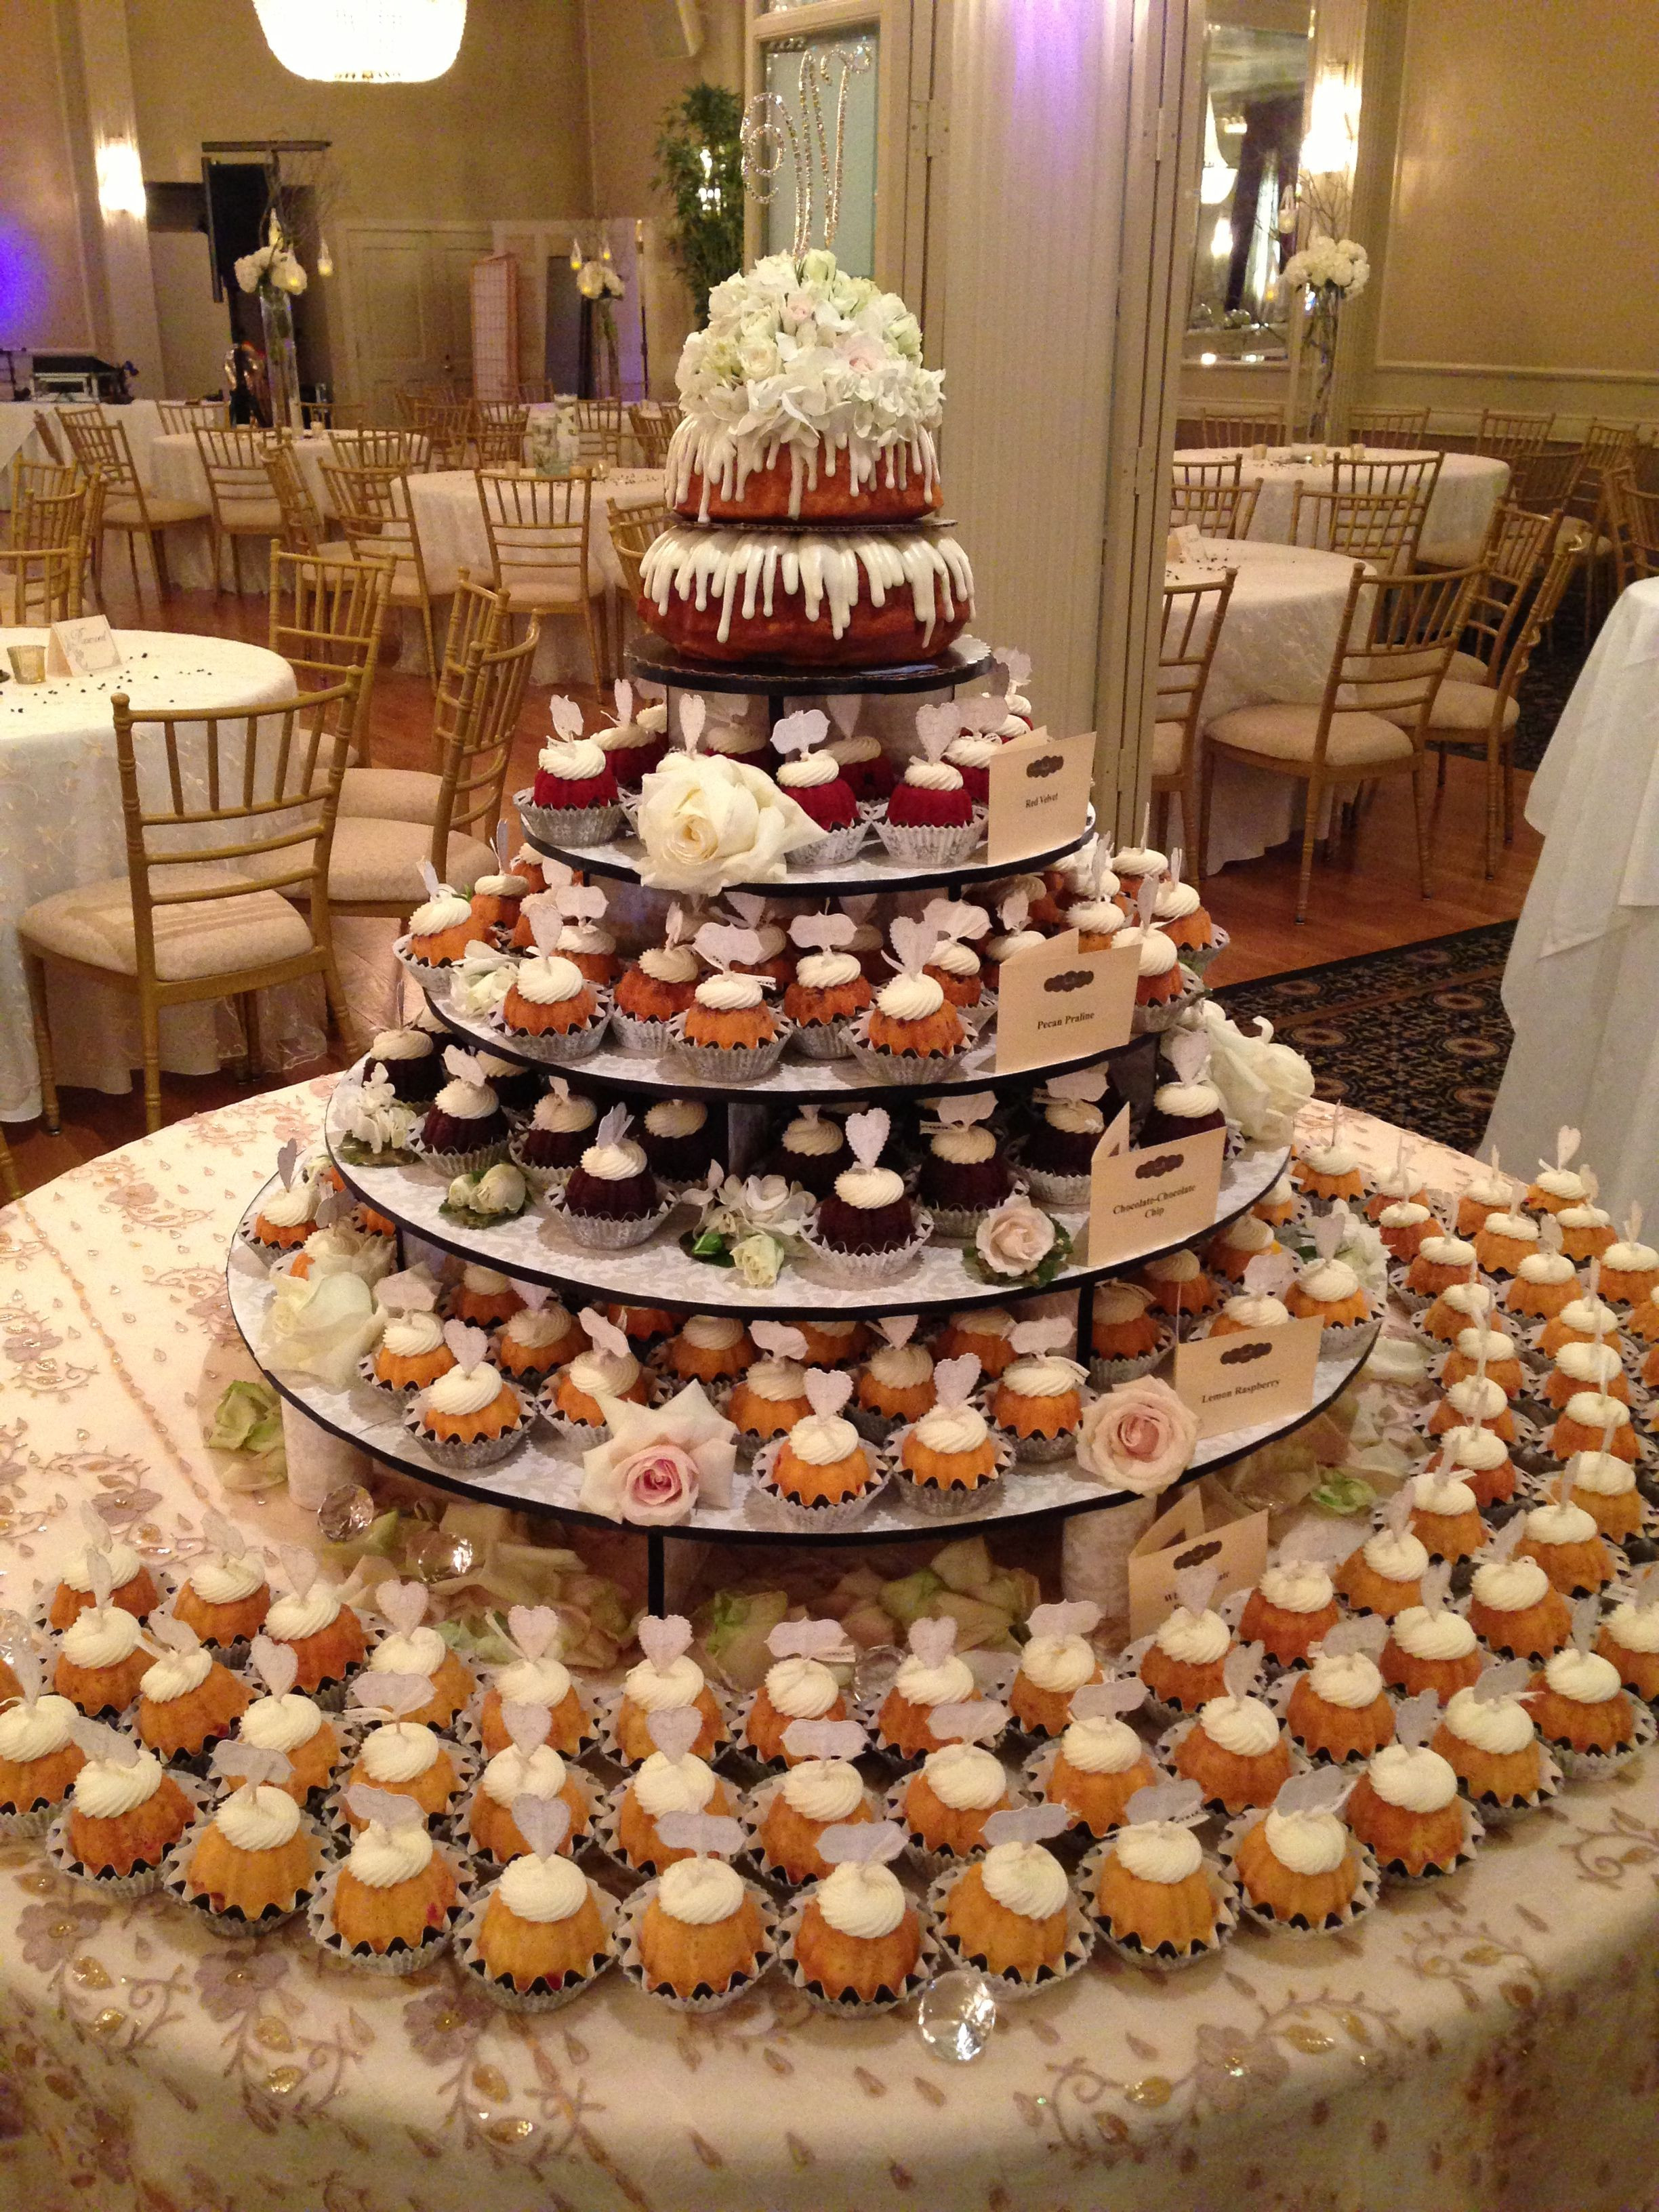 Bundt Wedding Cake  Maybe this is the way to go d just have a small cake